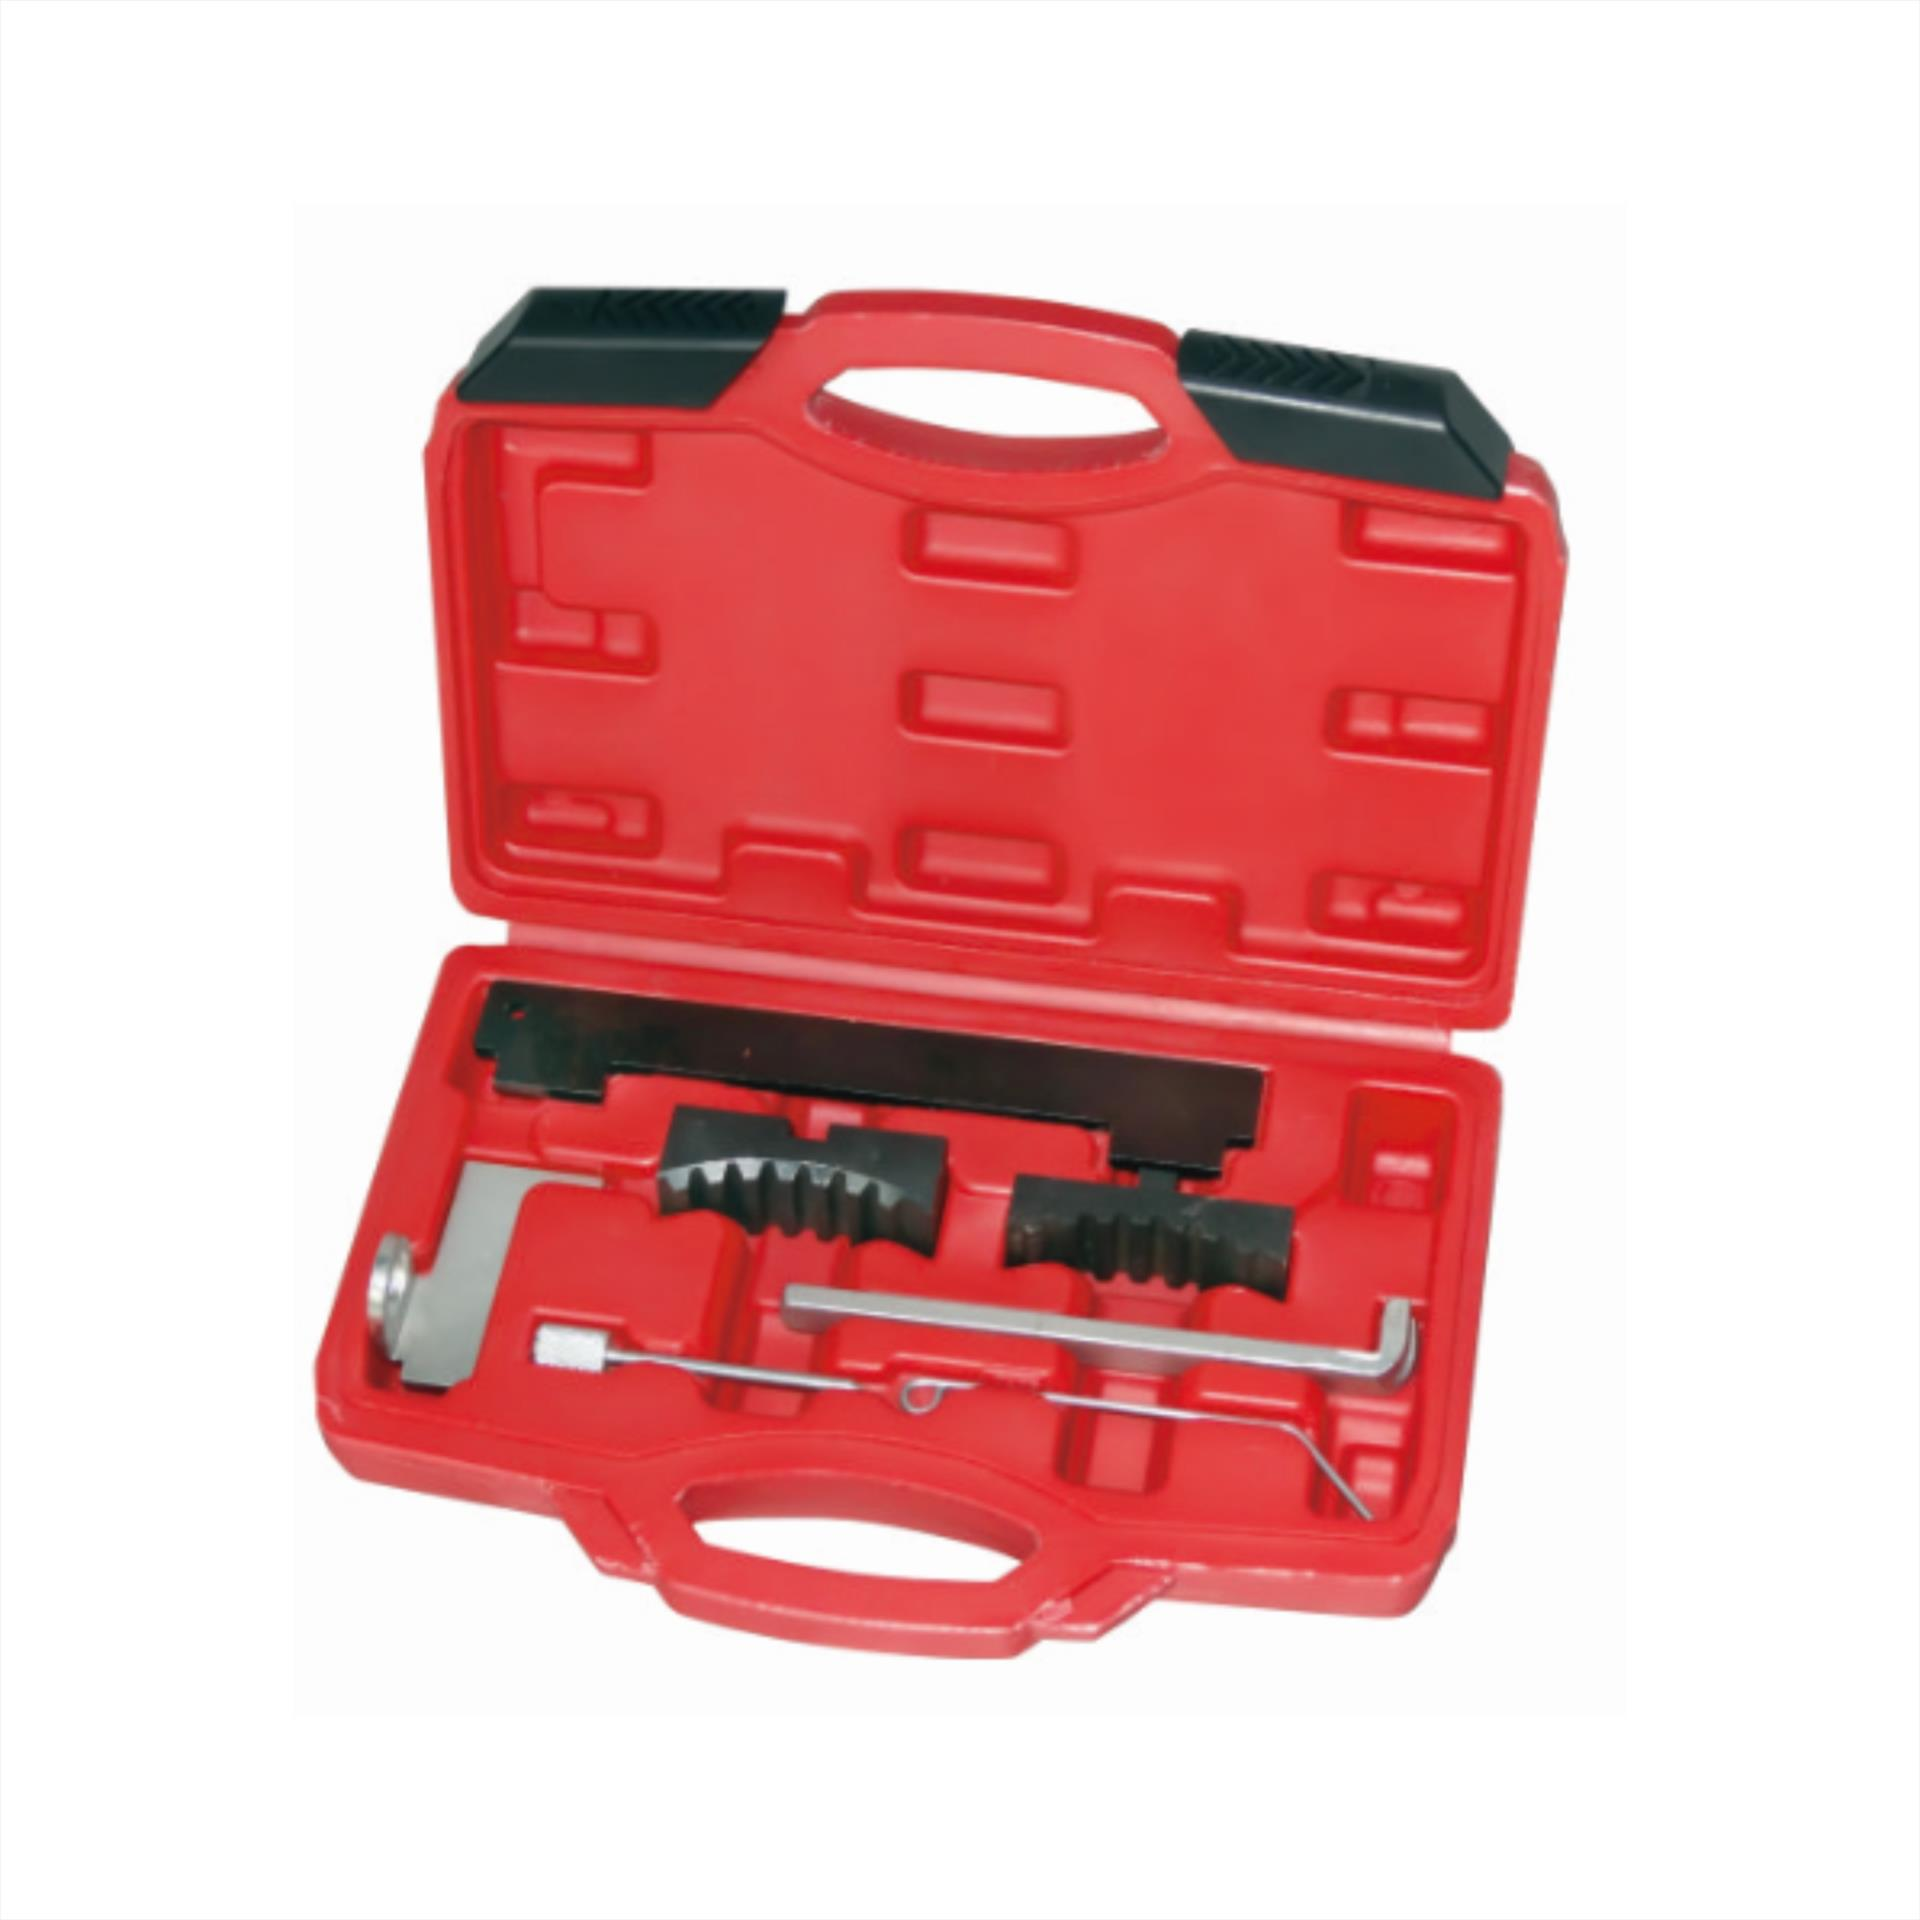 Engine Timing Tool Kit For Vauxhall Fiat Opel Alfa 1.6 1.8 16V 2003-11 Astra Corsa Vectra engine timing tool kit for renault vauxhall petrol engines 1 4 1 6 1 8 2 0 16v belt driven